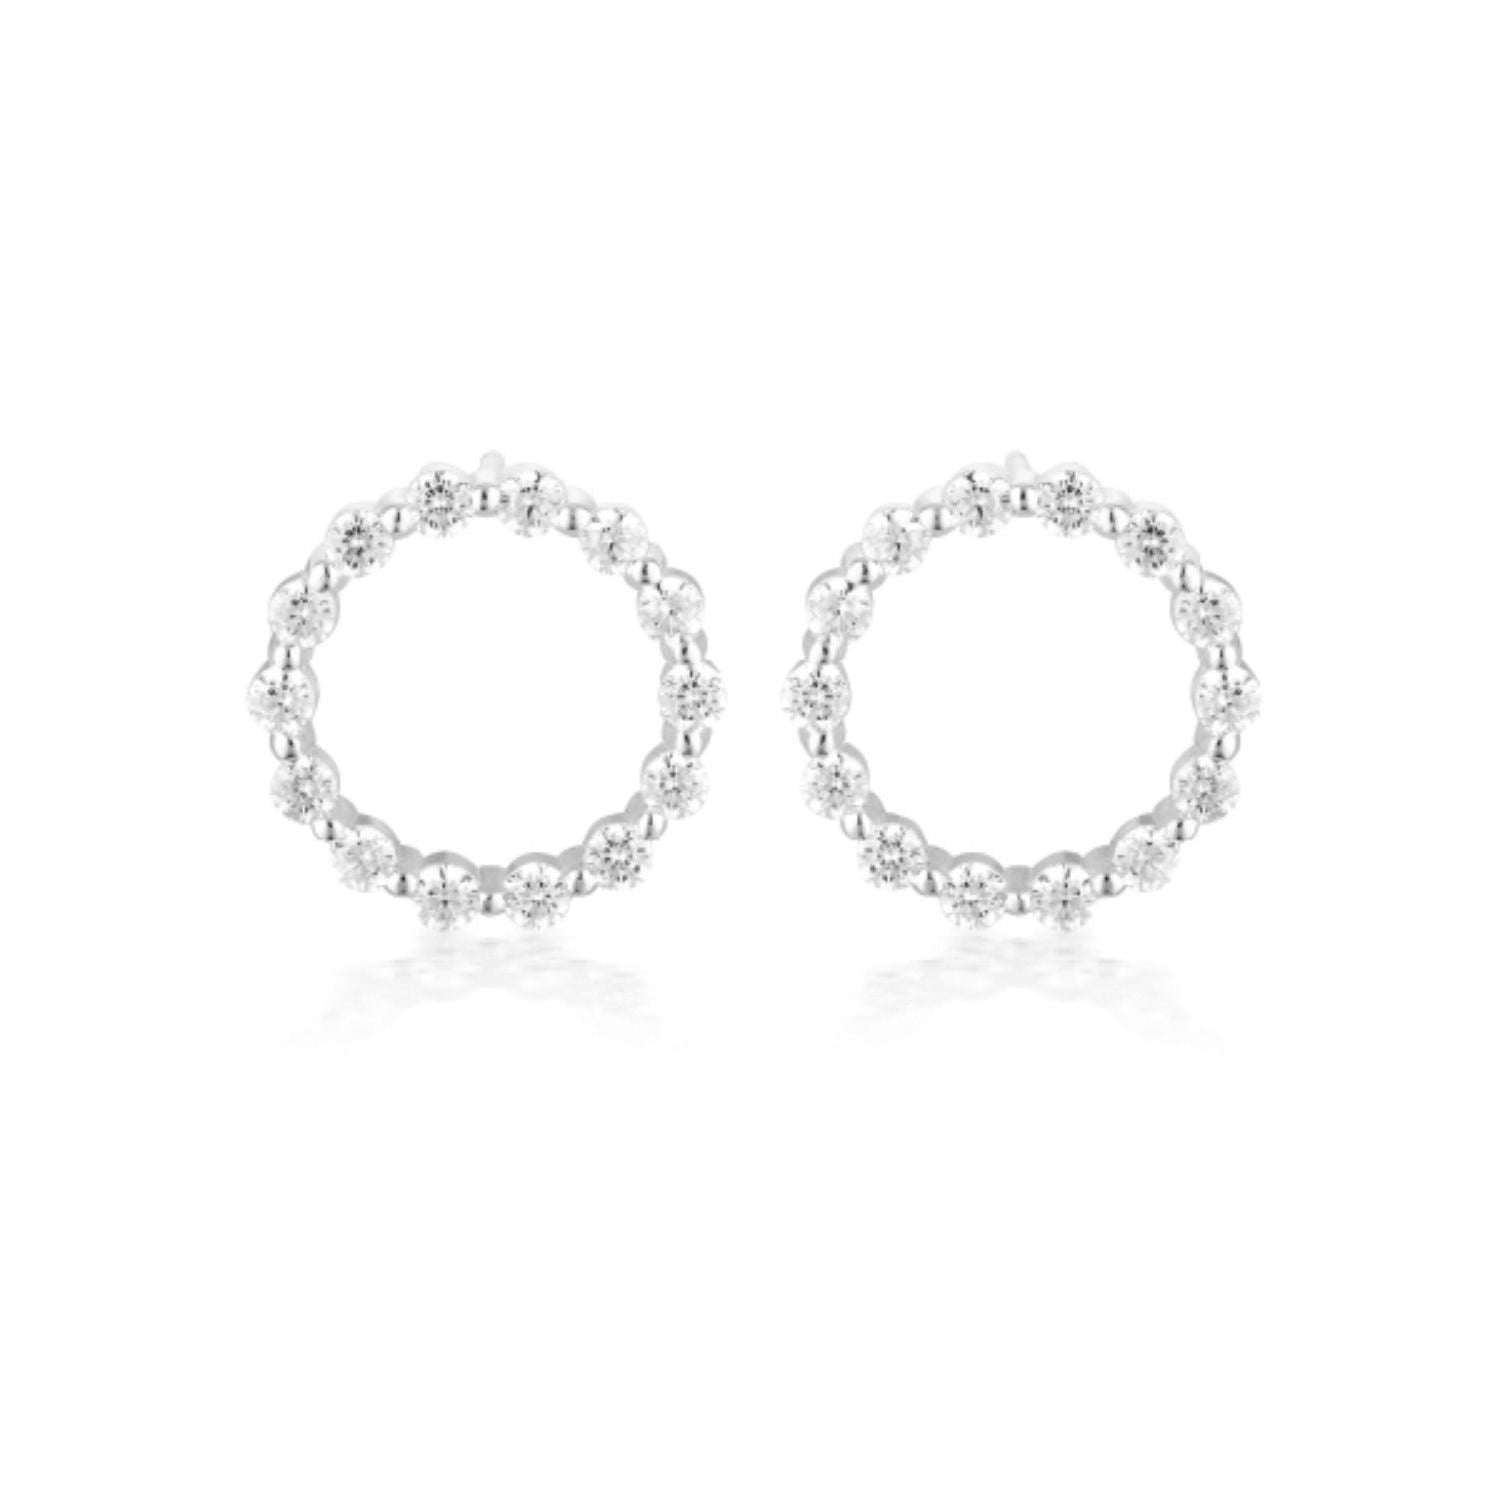 Georgini - Circle Of Life Small Sterling Silver Cubic Zirconia Stud Earrings